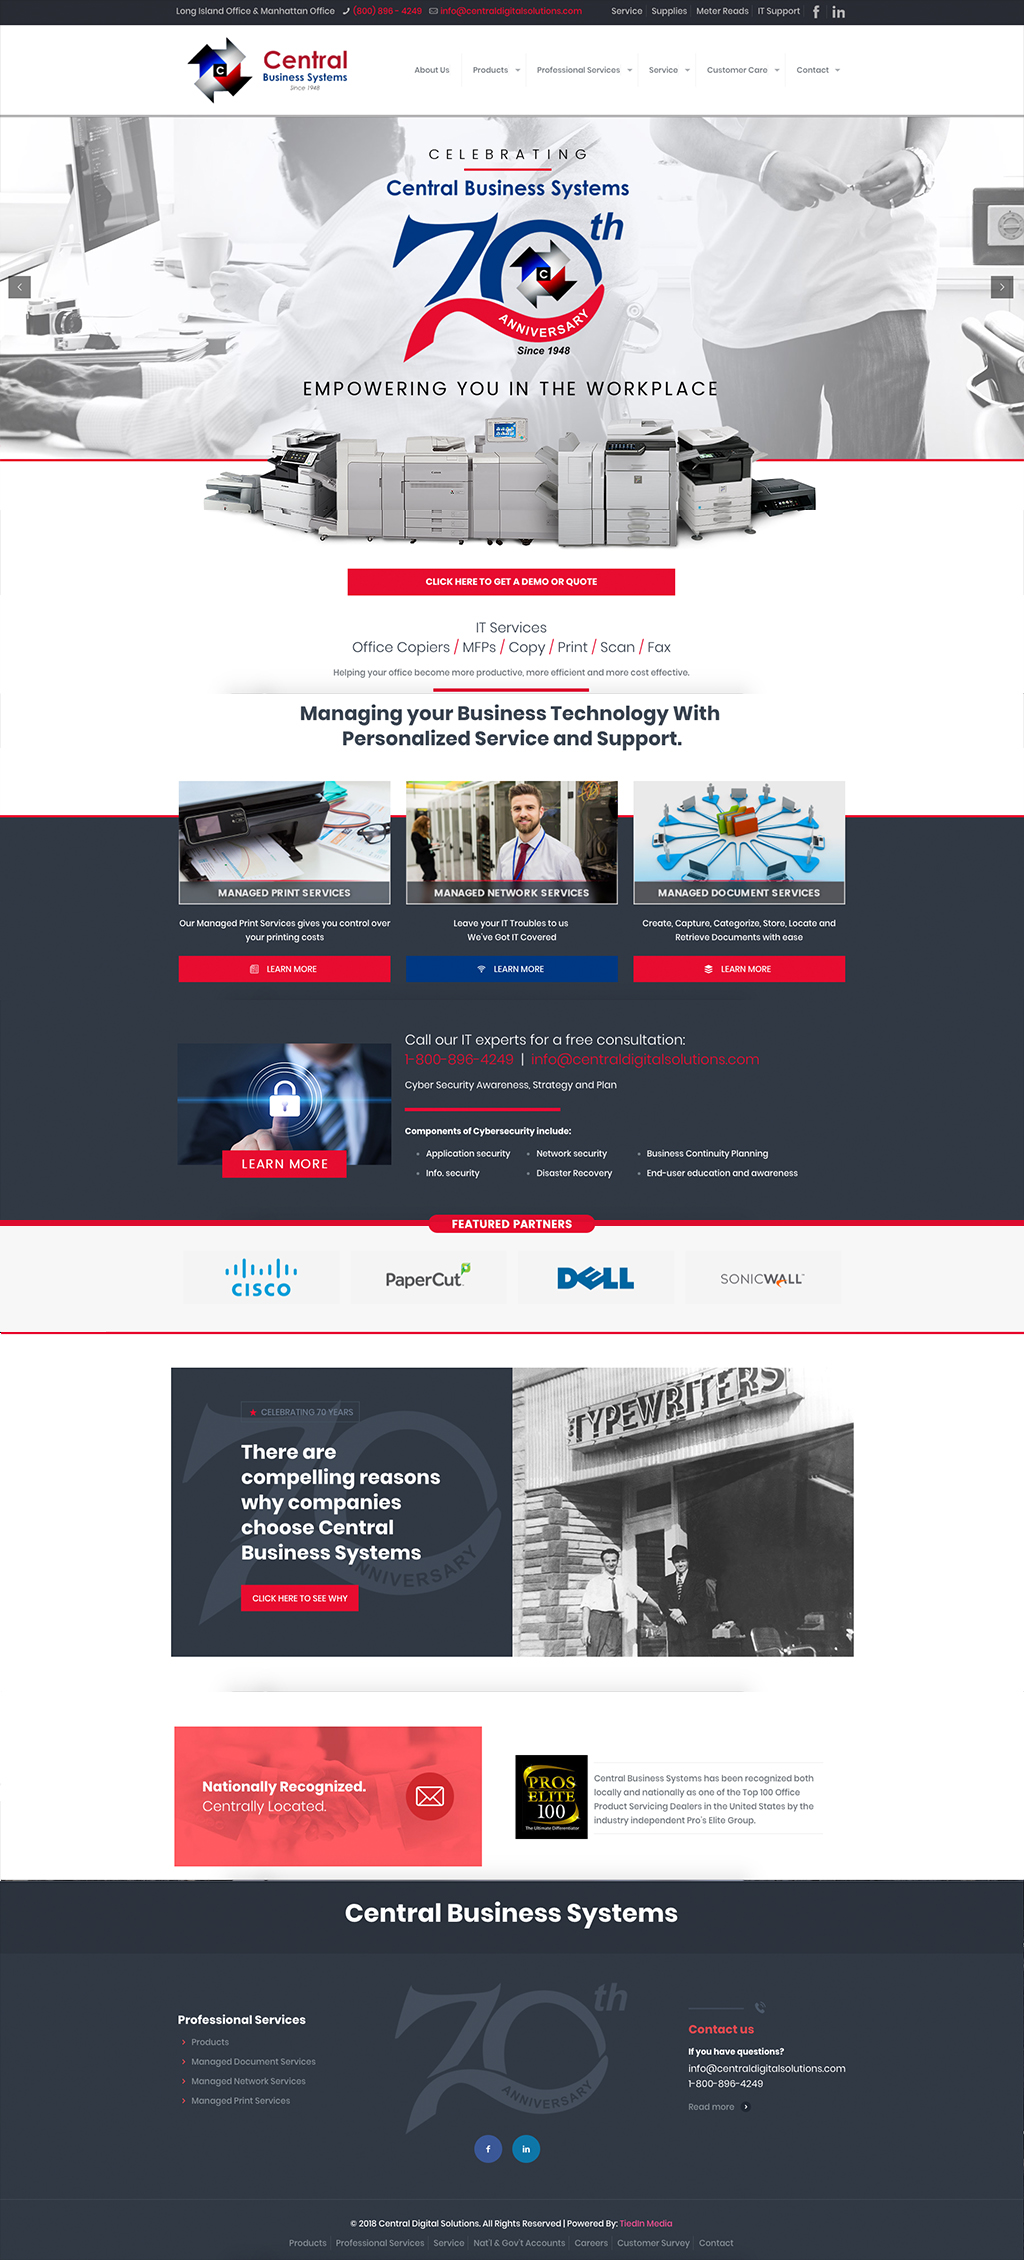 Central-Business-Systems-homepage